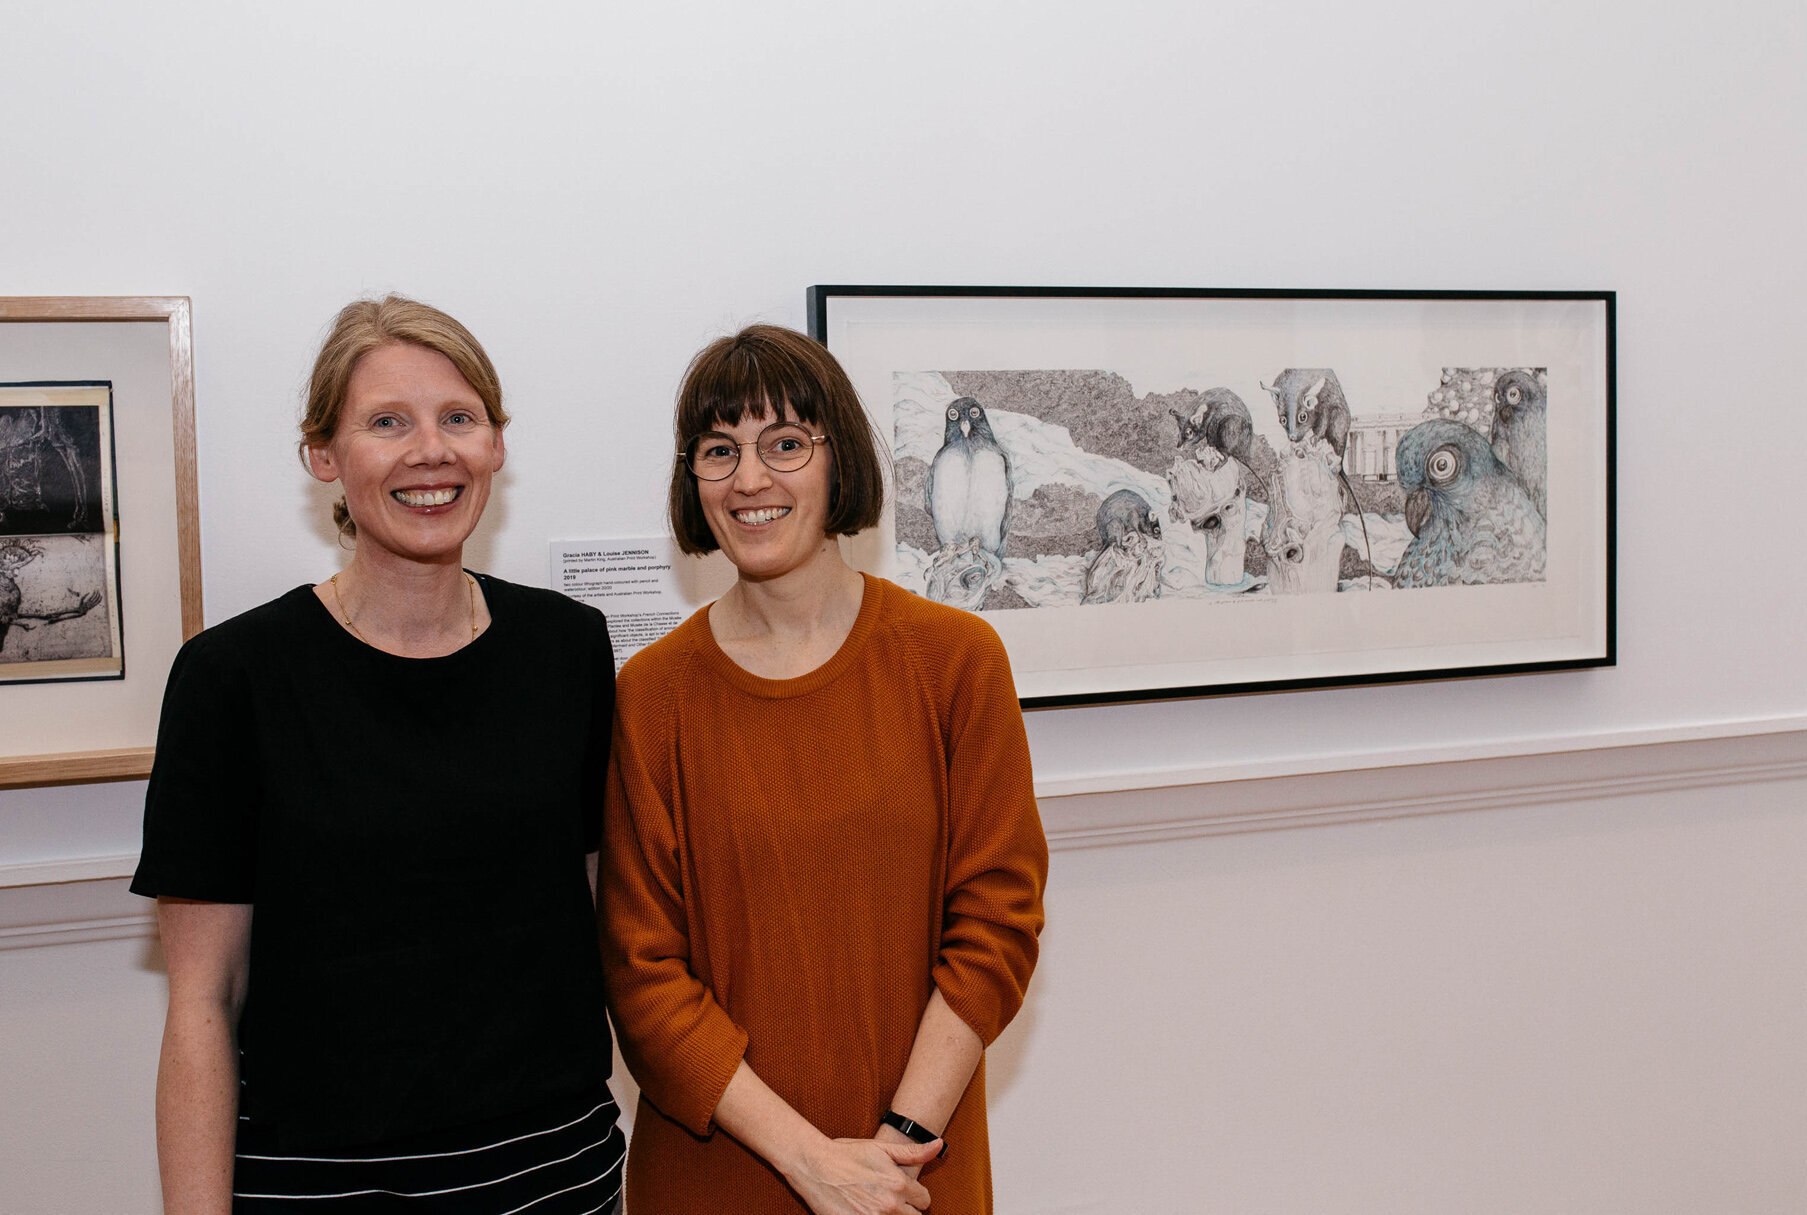 2019 Geelong acquisitive print awards  (photo: Andrew Curtis)